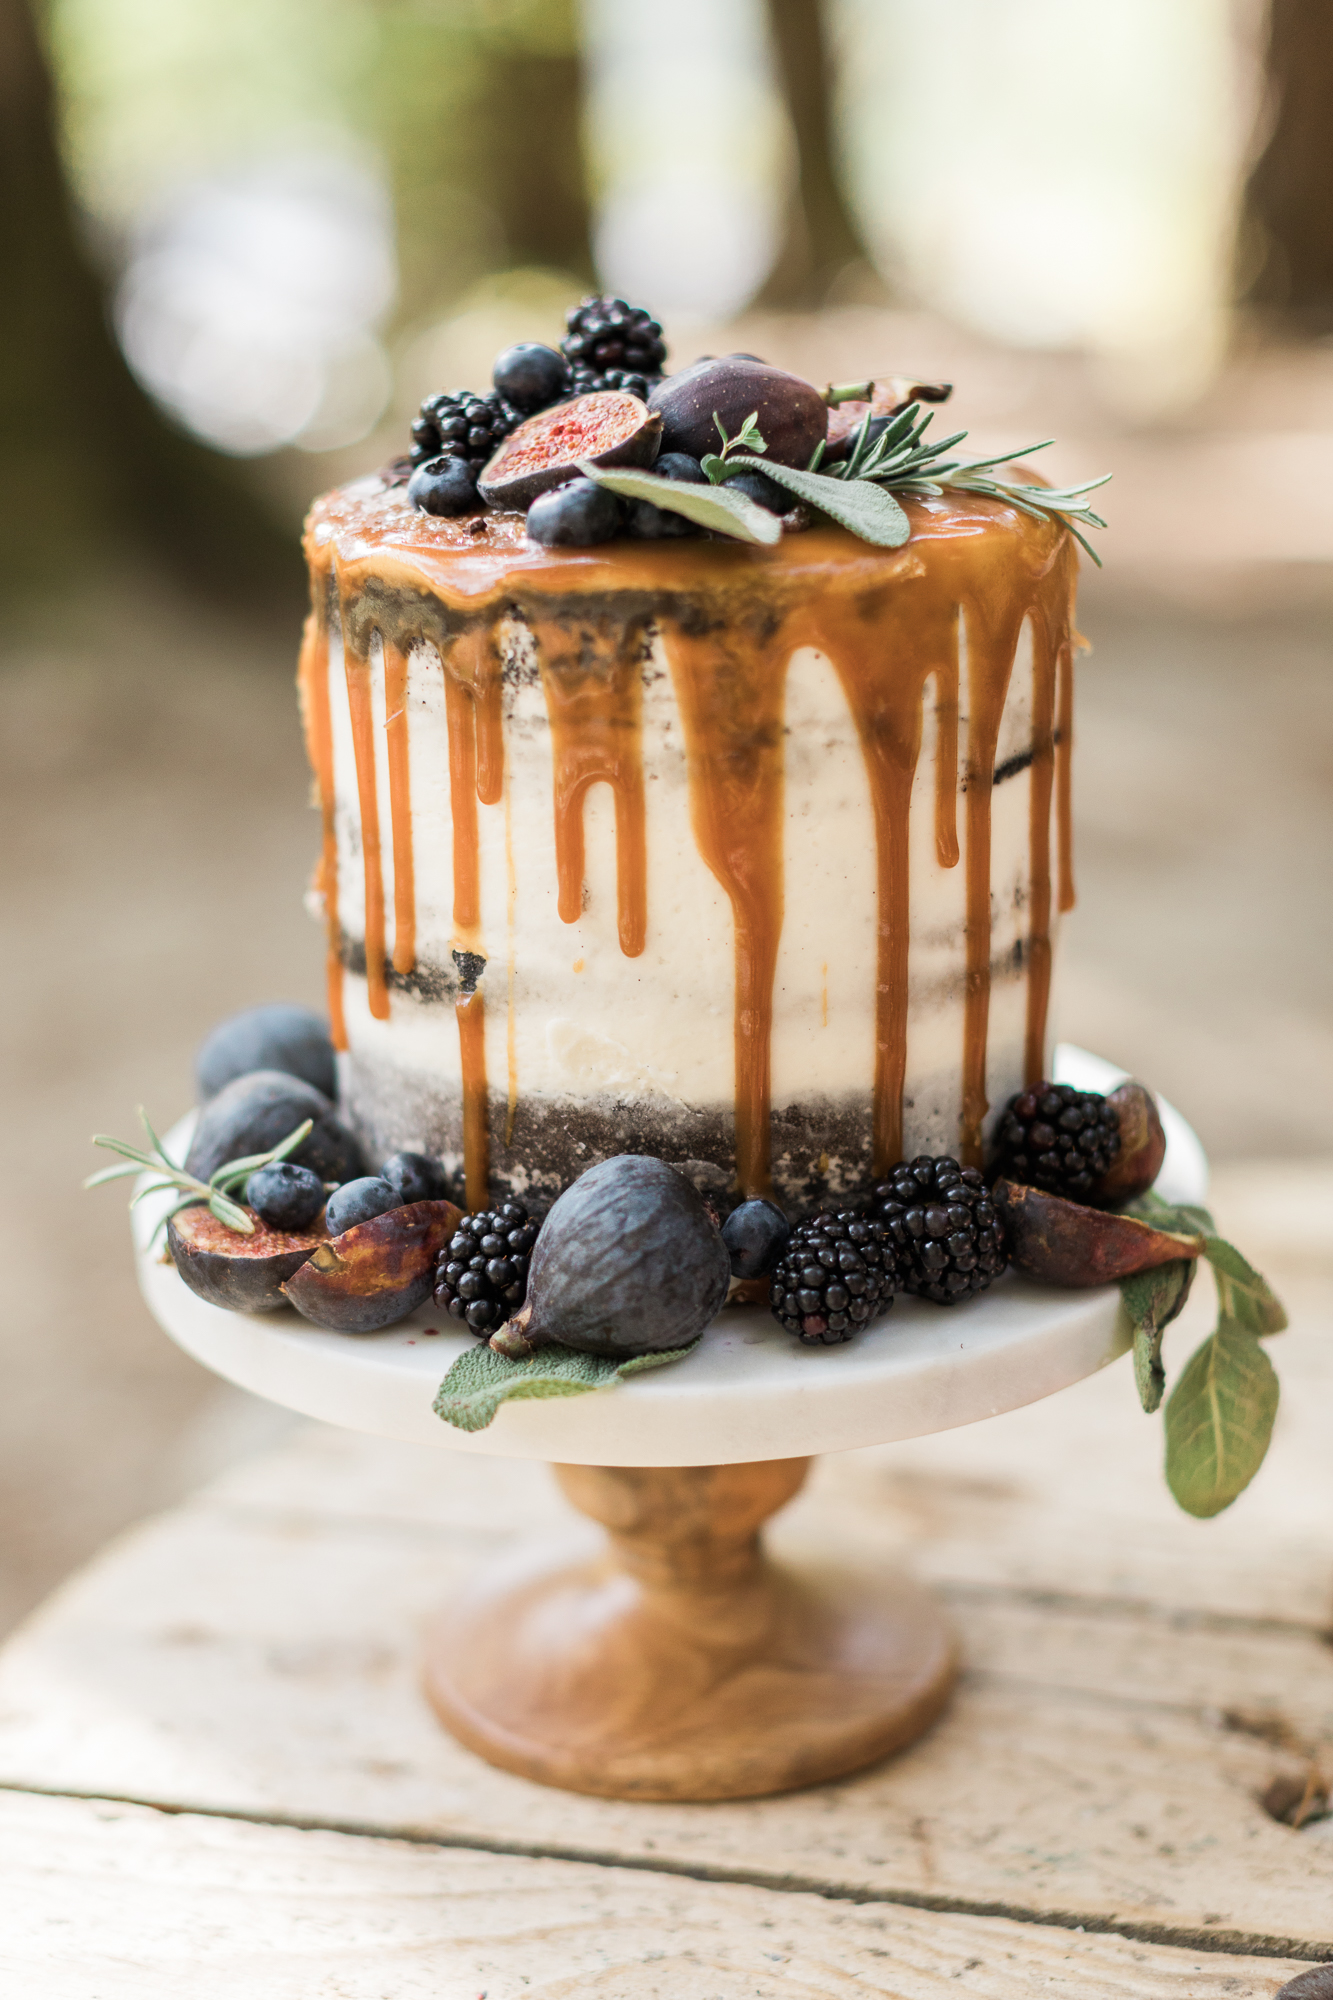 Salted Caramel Translucent Cake:  Eat More Cake by Candice  Image:  Joanna Monger